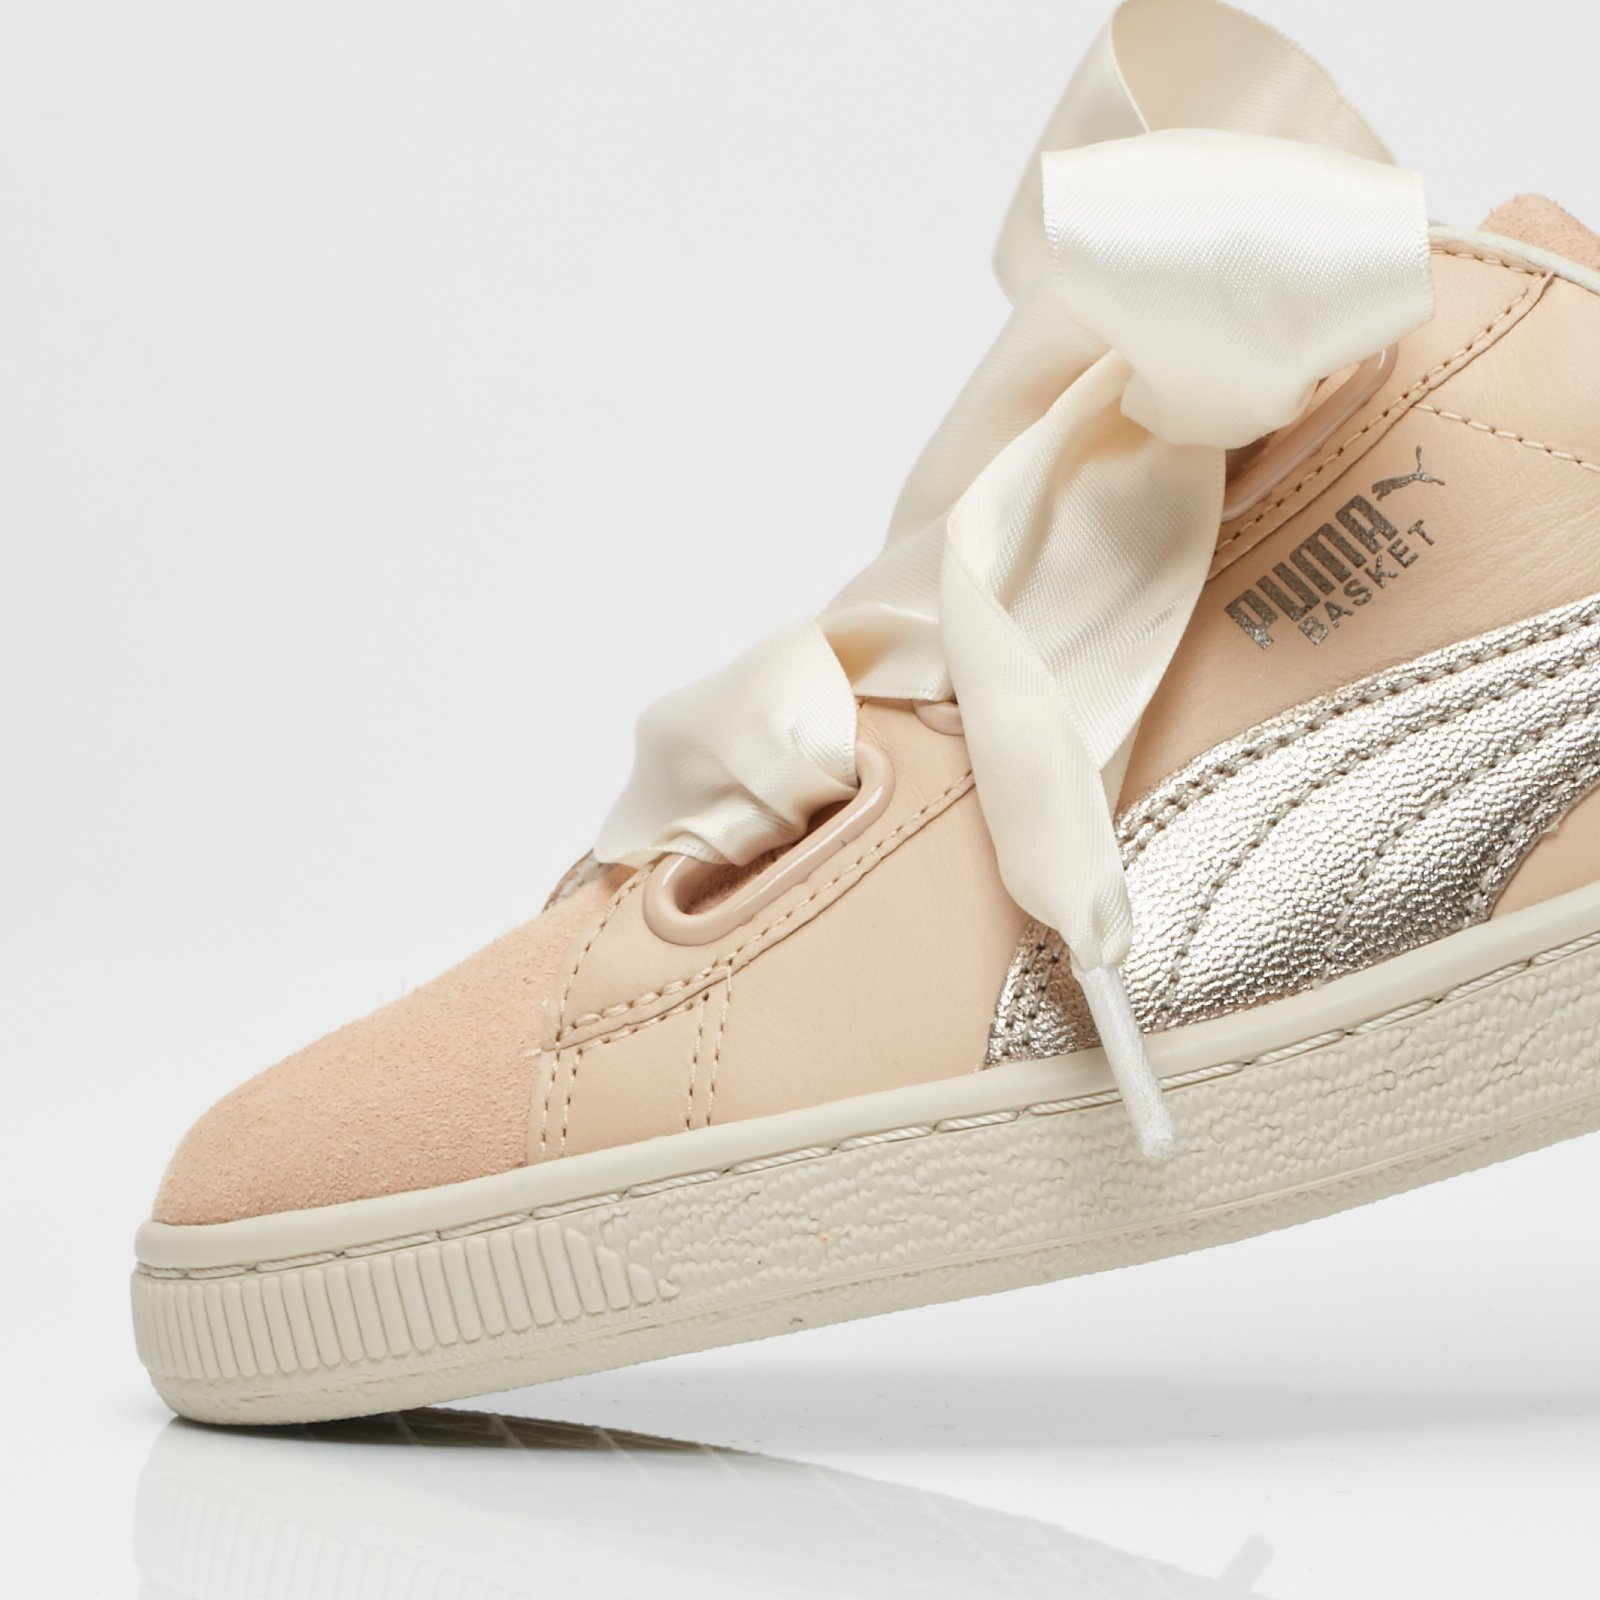 sports shoes 5ab0b 09ab3 Puma Basket Heart Up Wns - 364955-01 - Sneakersnstuff ...